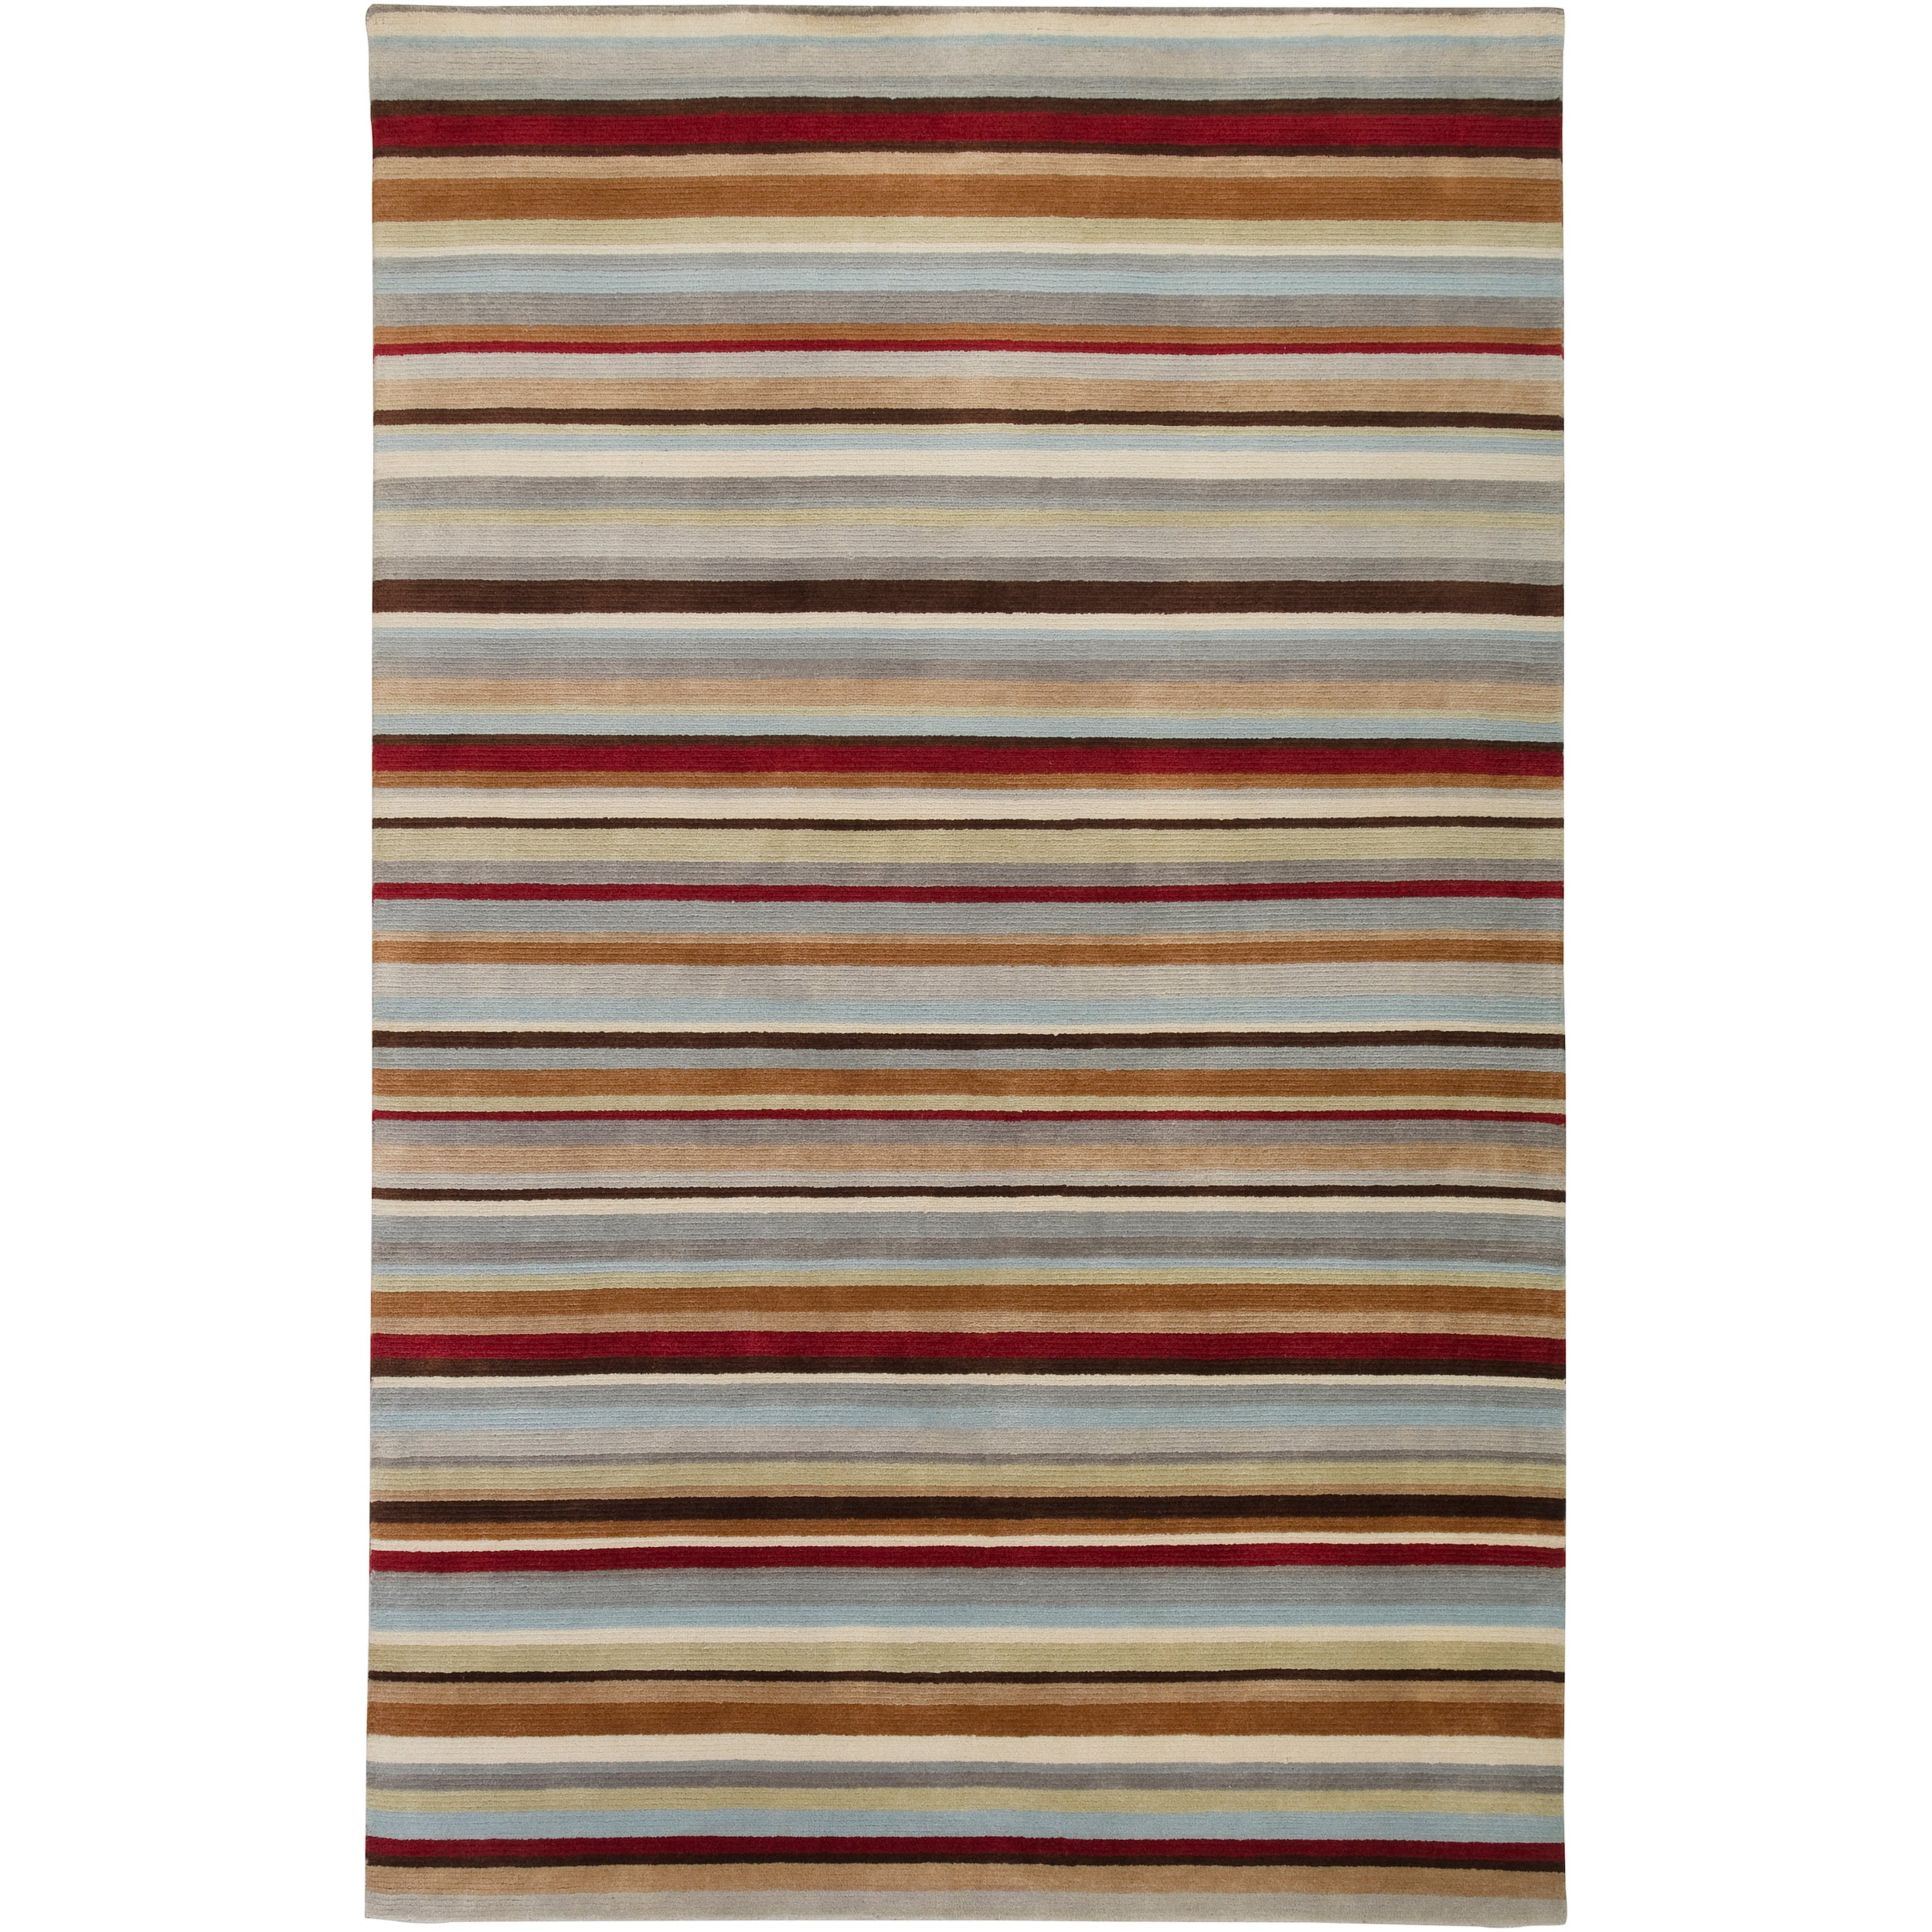 Contemporary Hand-Knotted Multicolored Eau Claire Stripe Wool Area Rug (2' x 3')